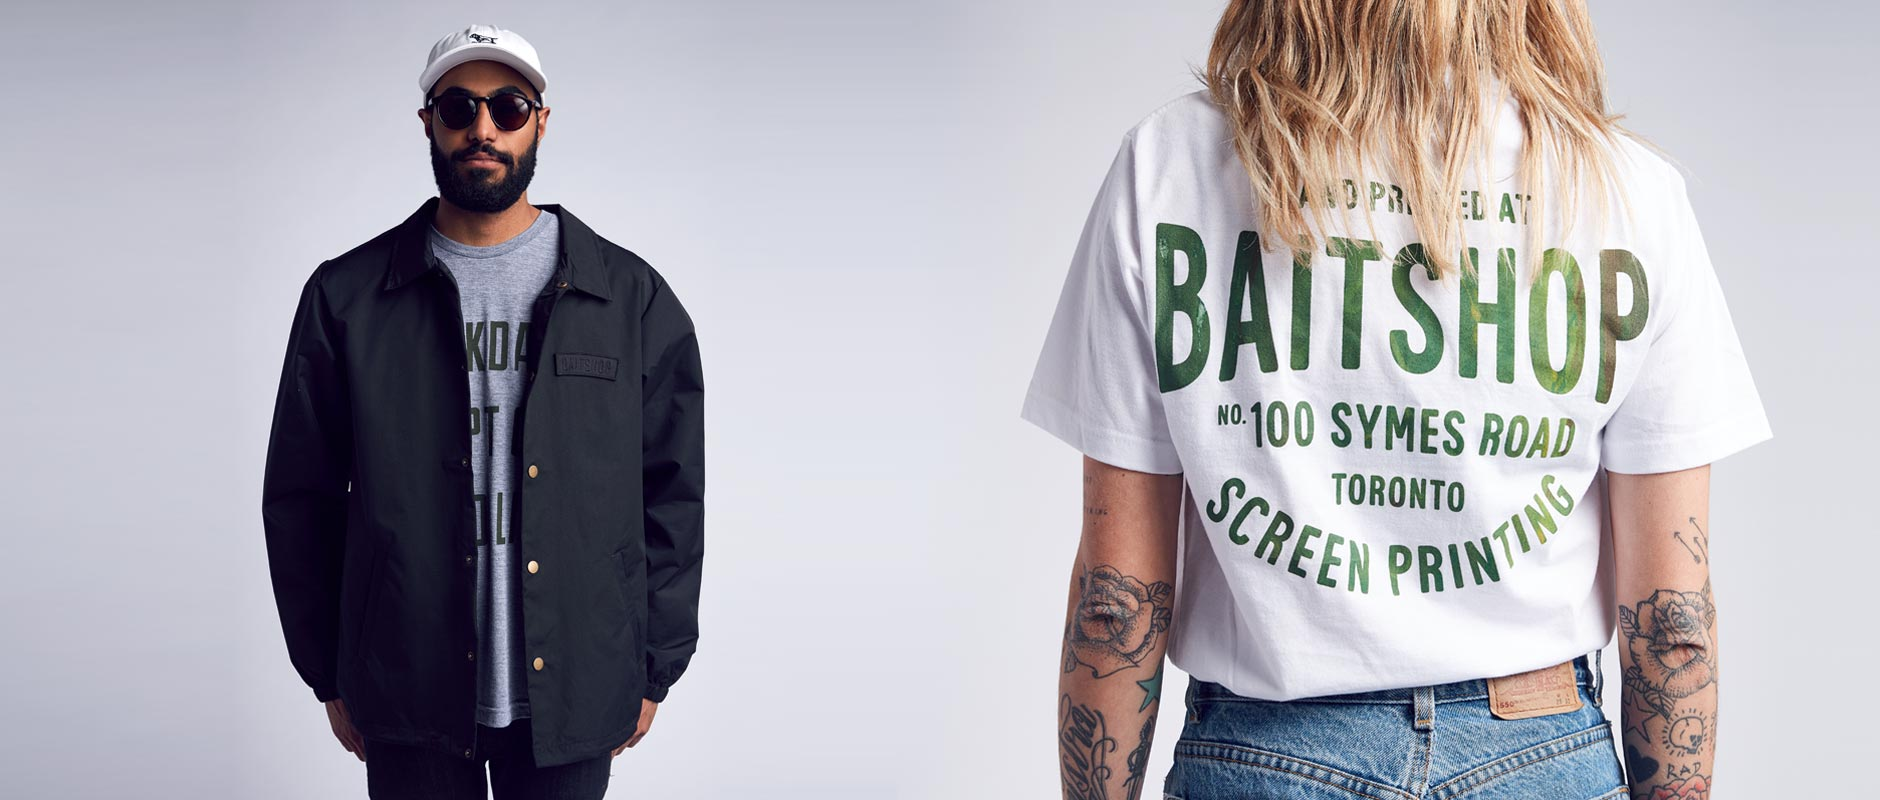 Male model on left with Baitshop Hunting Dad Hat and Coach Jacket, Female model on right with Stockyards sear sucker t-shirt